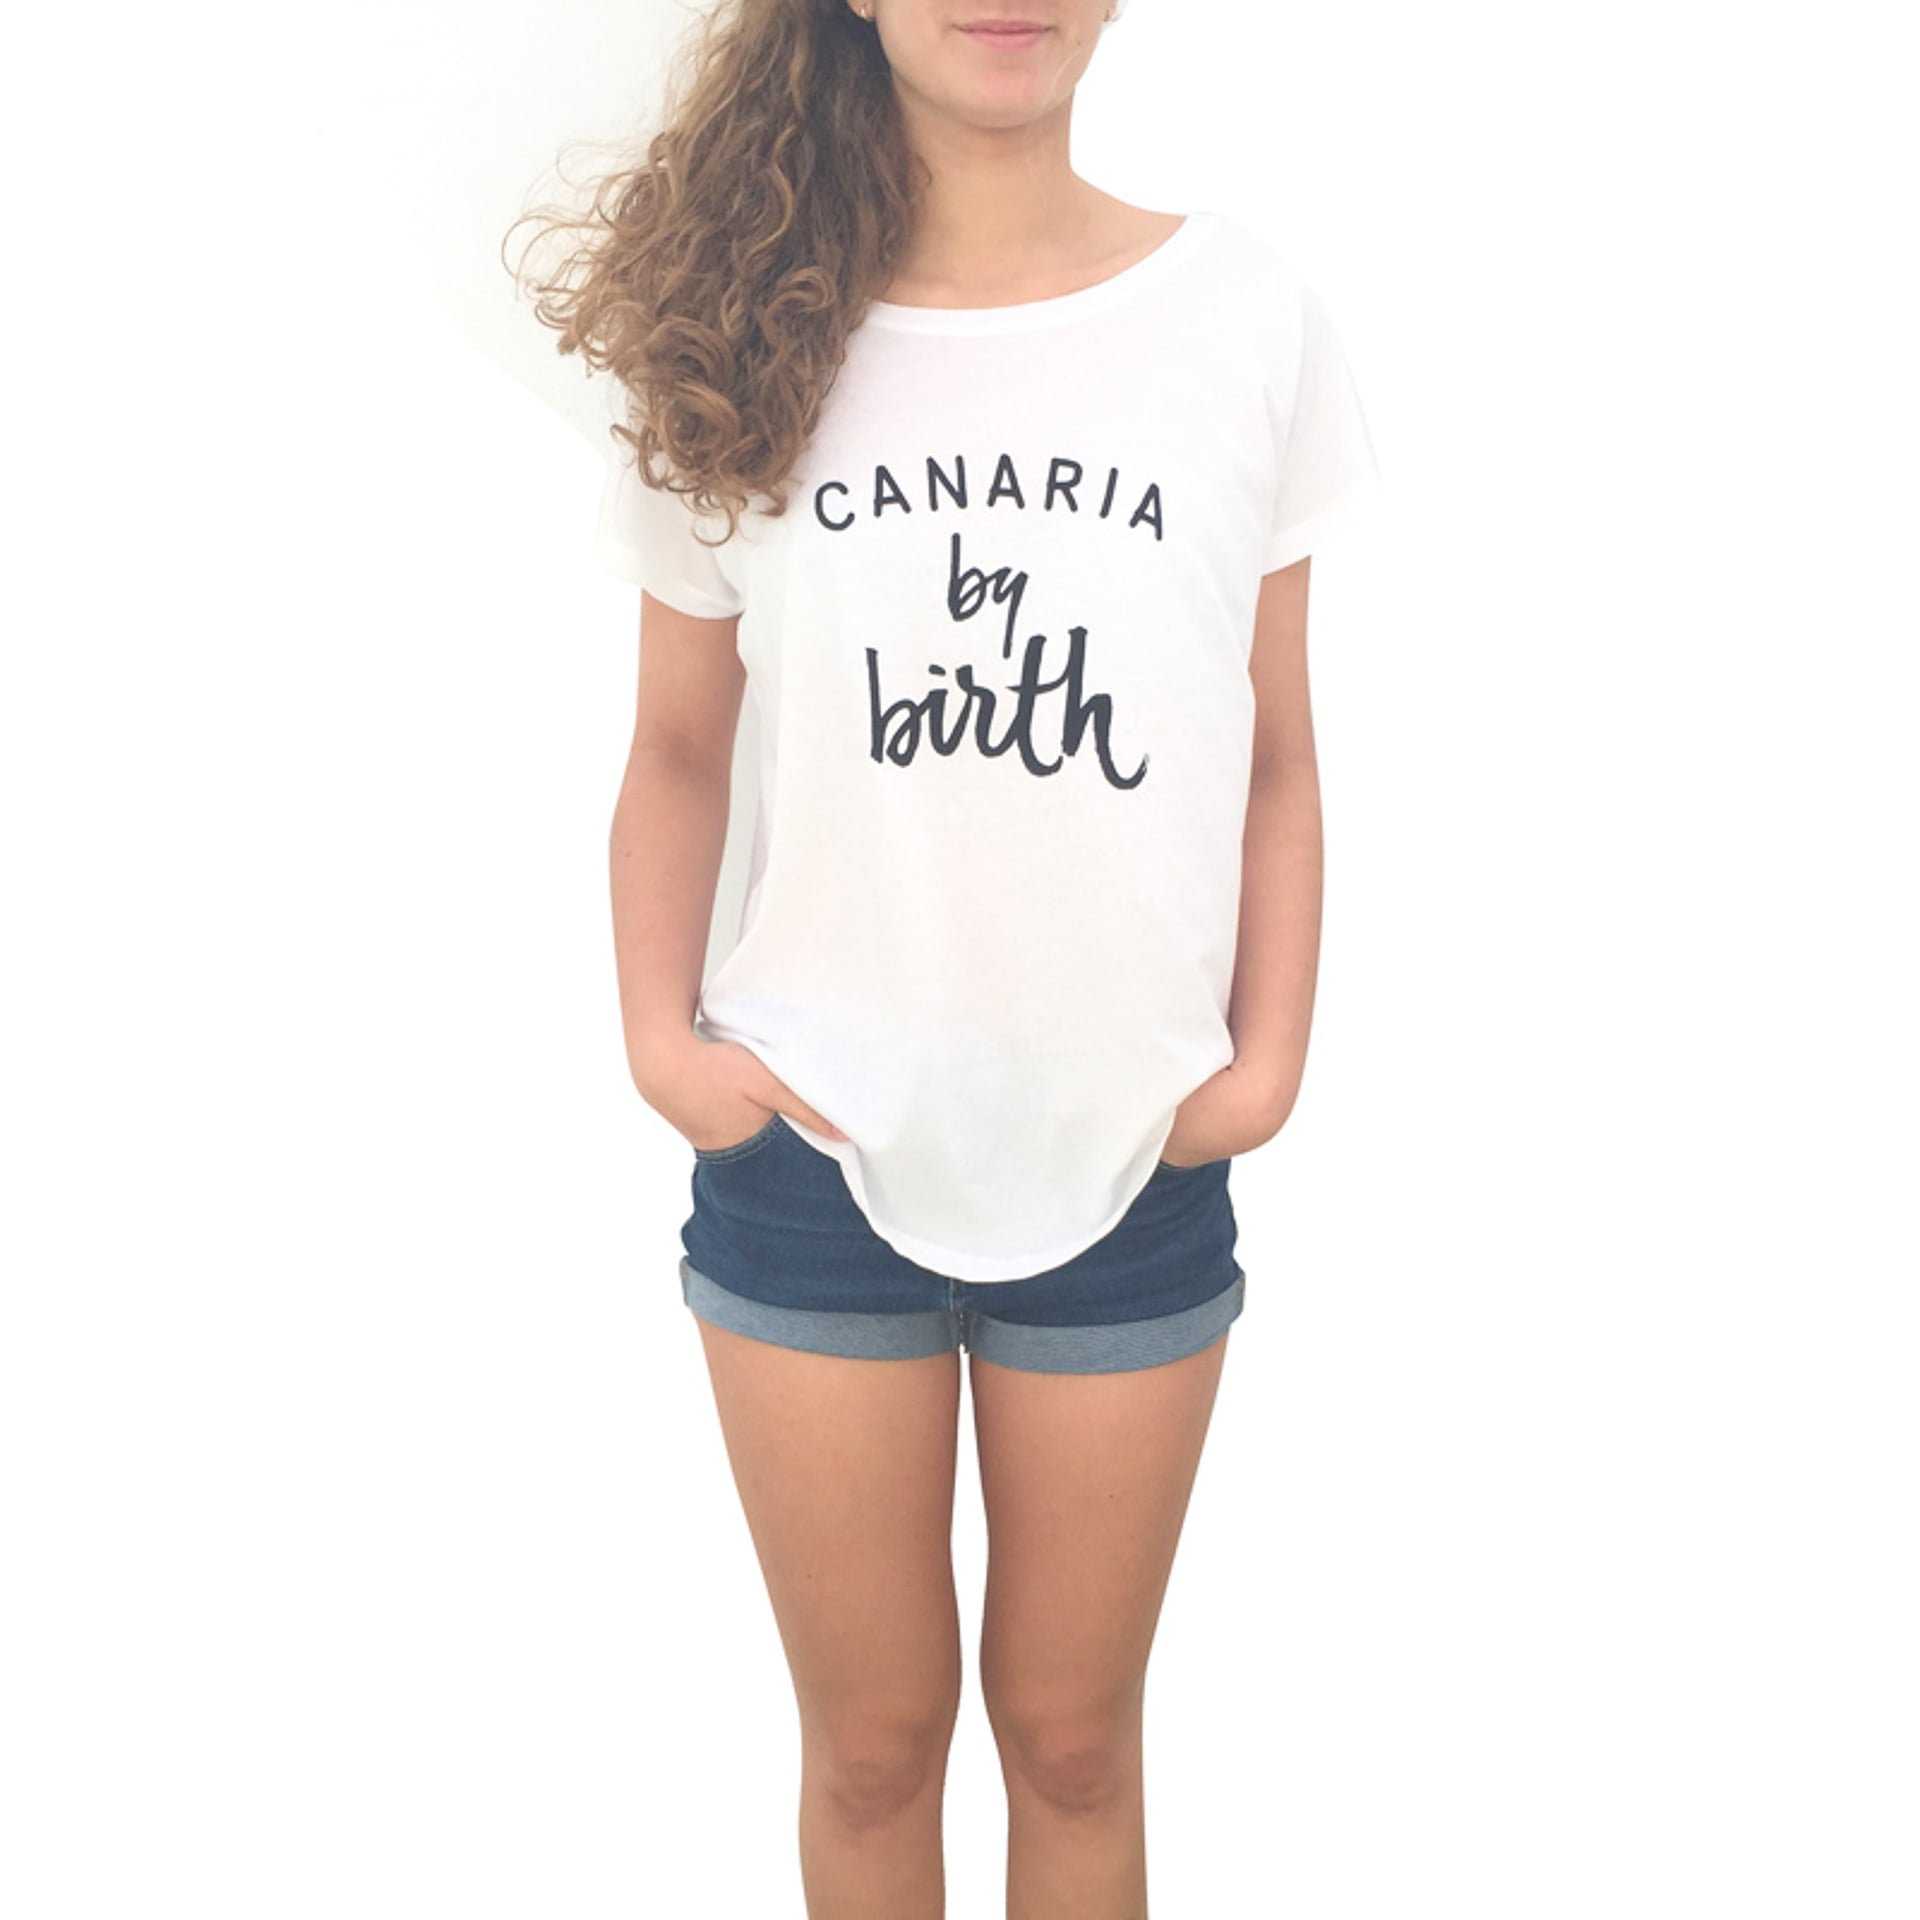 Canaria_by_birth-woman-white-model-tshirt